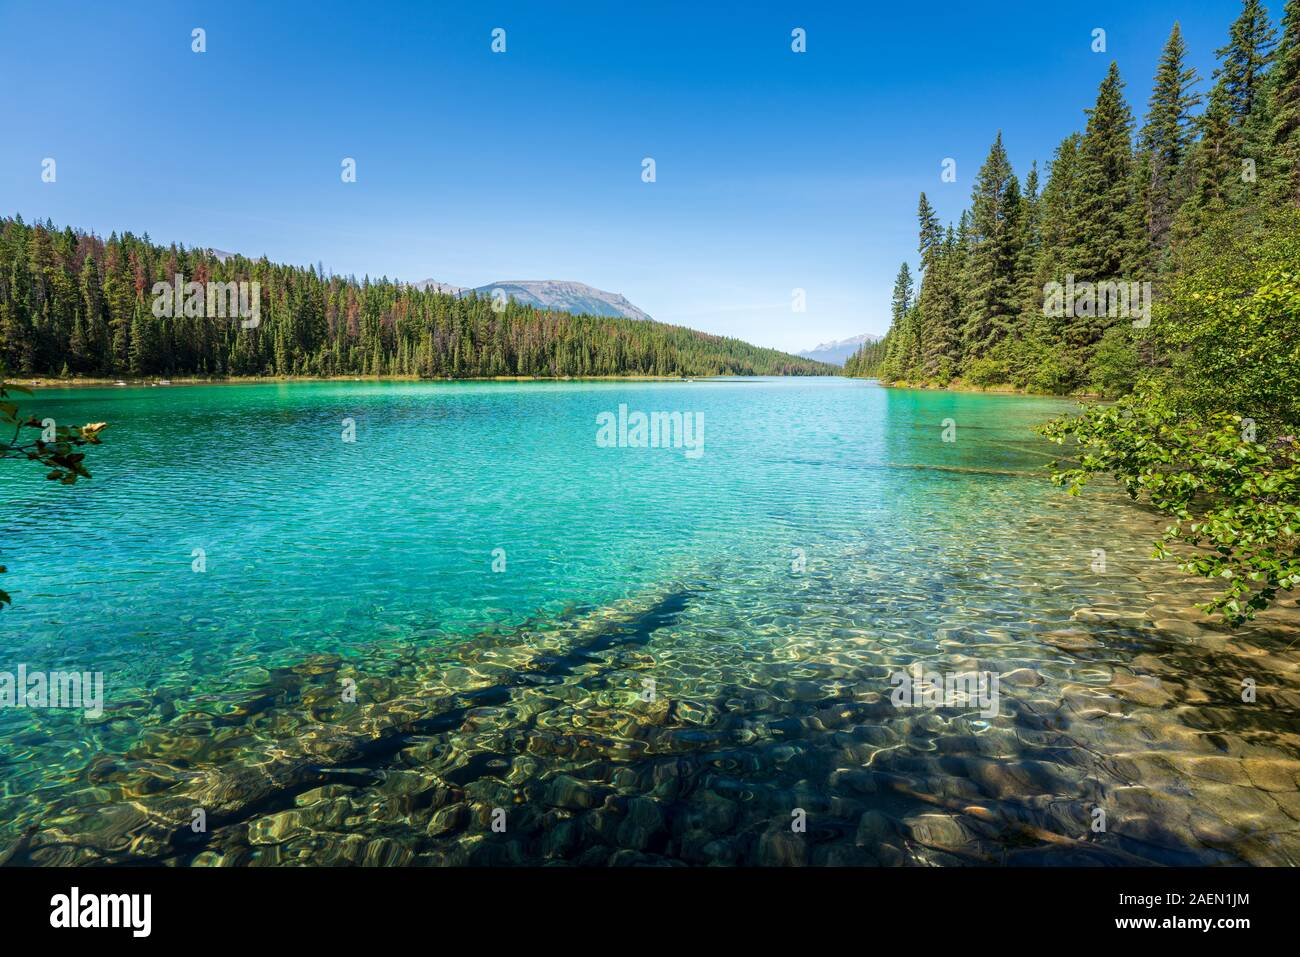 Turquoise Lake, Valley of the Five Lakes, Jasper National Park, back mountains, Alberta, Canada Stock Photo